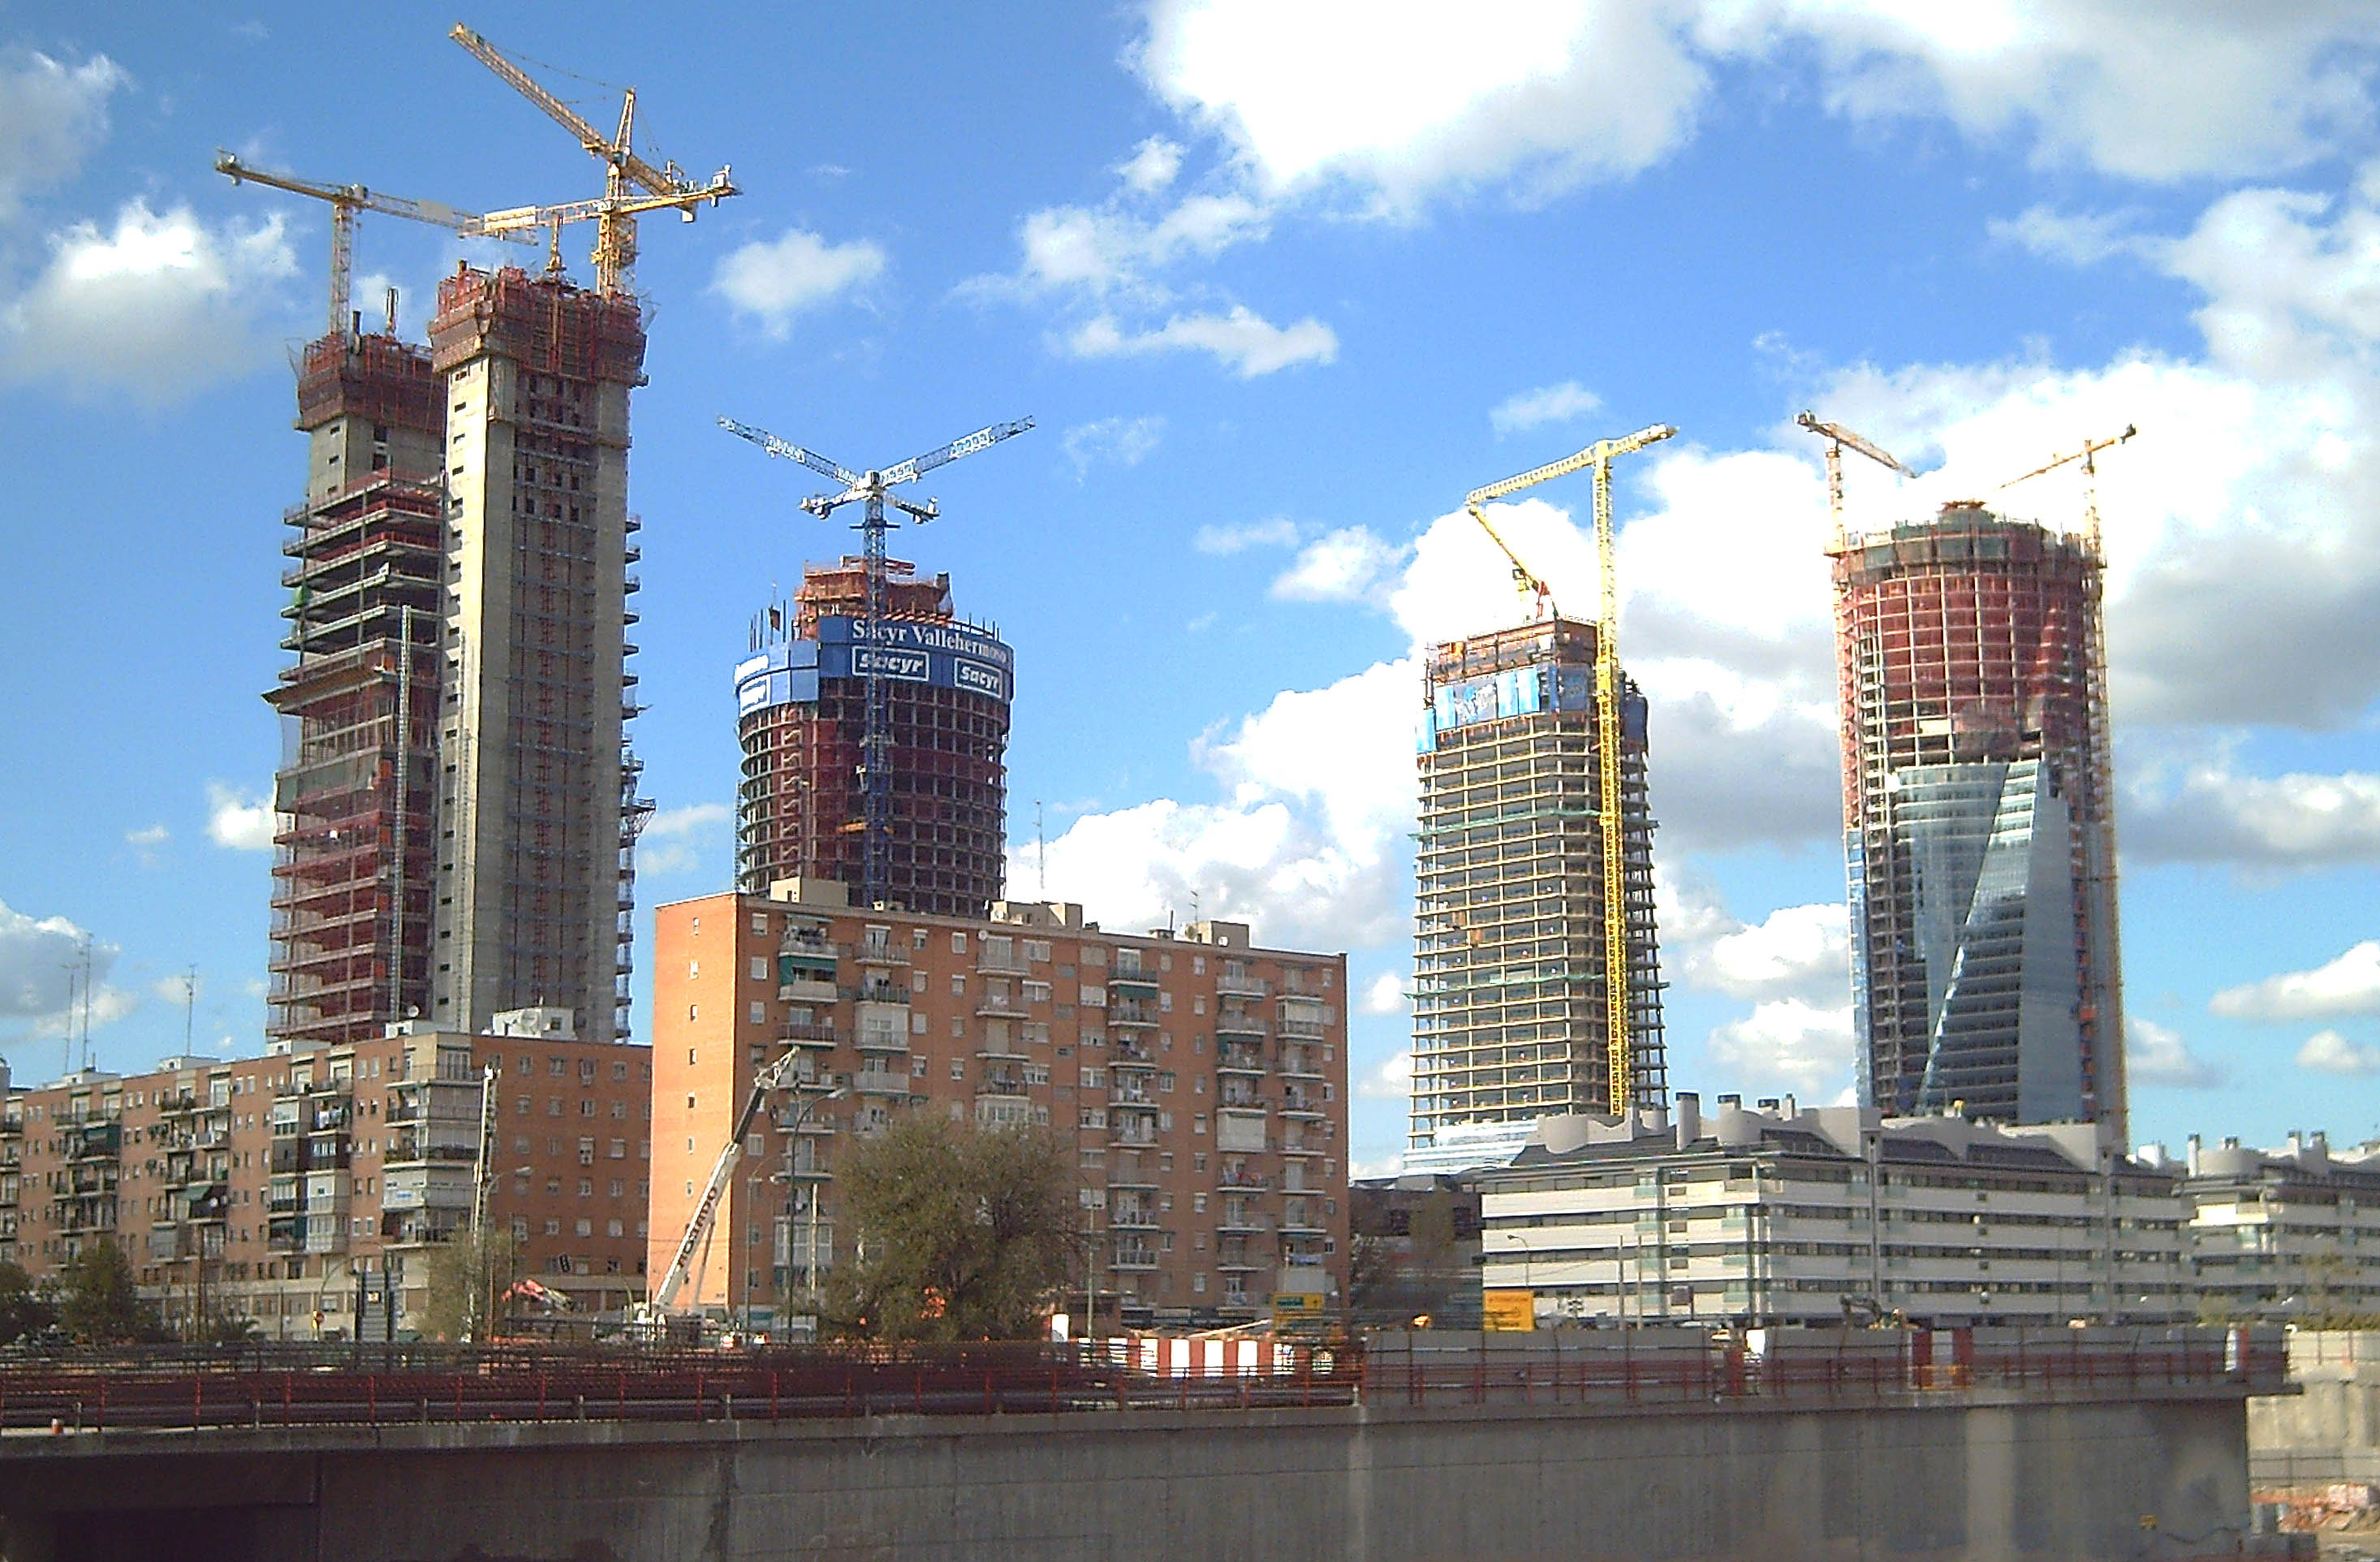 Ctba madrid cuatro torres business area - Empresas de construccion madrid ...